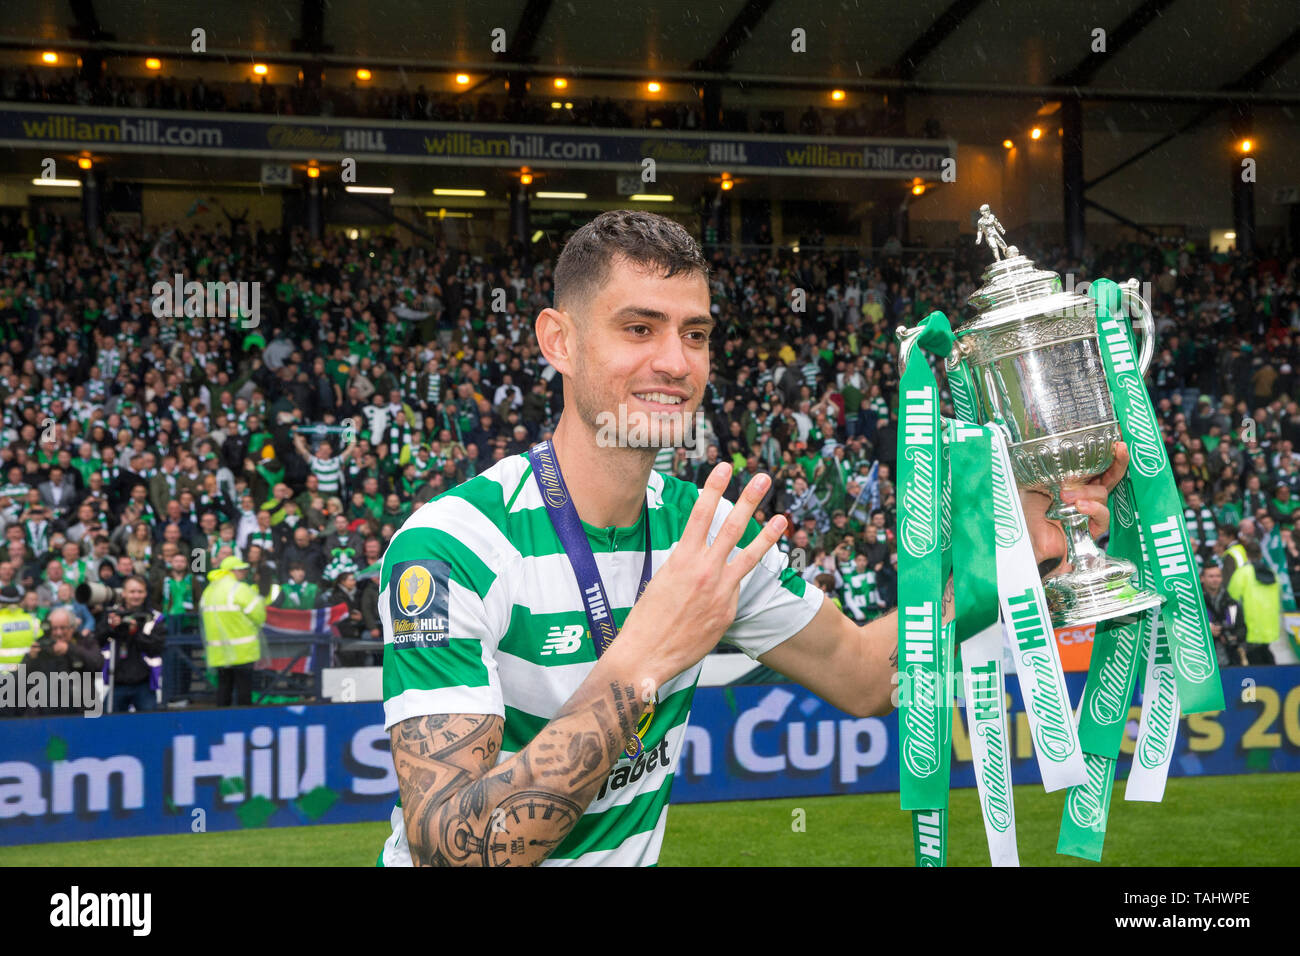 Celtic's Nir Bitton poses with the trophy after the William Hill Scottish Cup Final at Hampden Park, Glasgow. - Stock Image